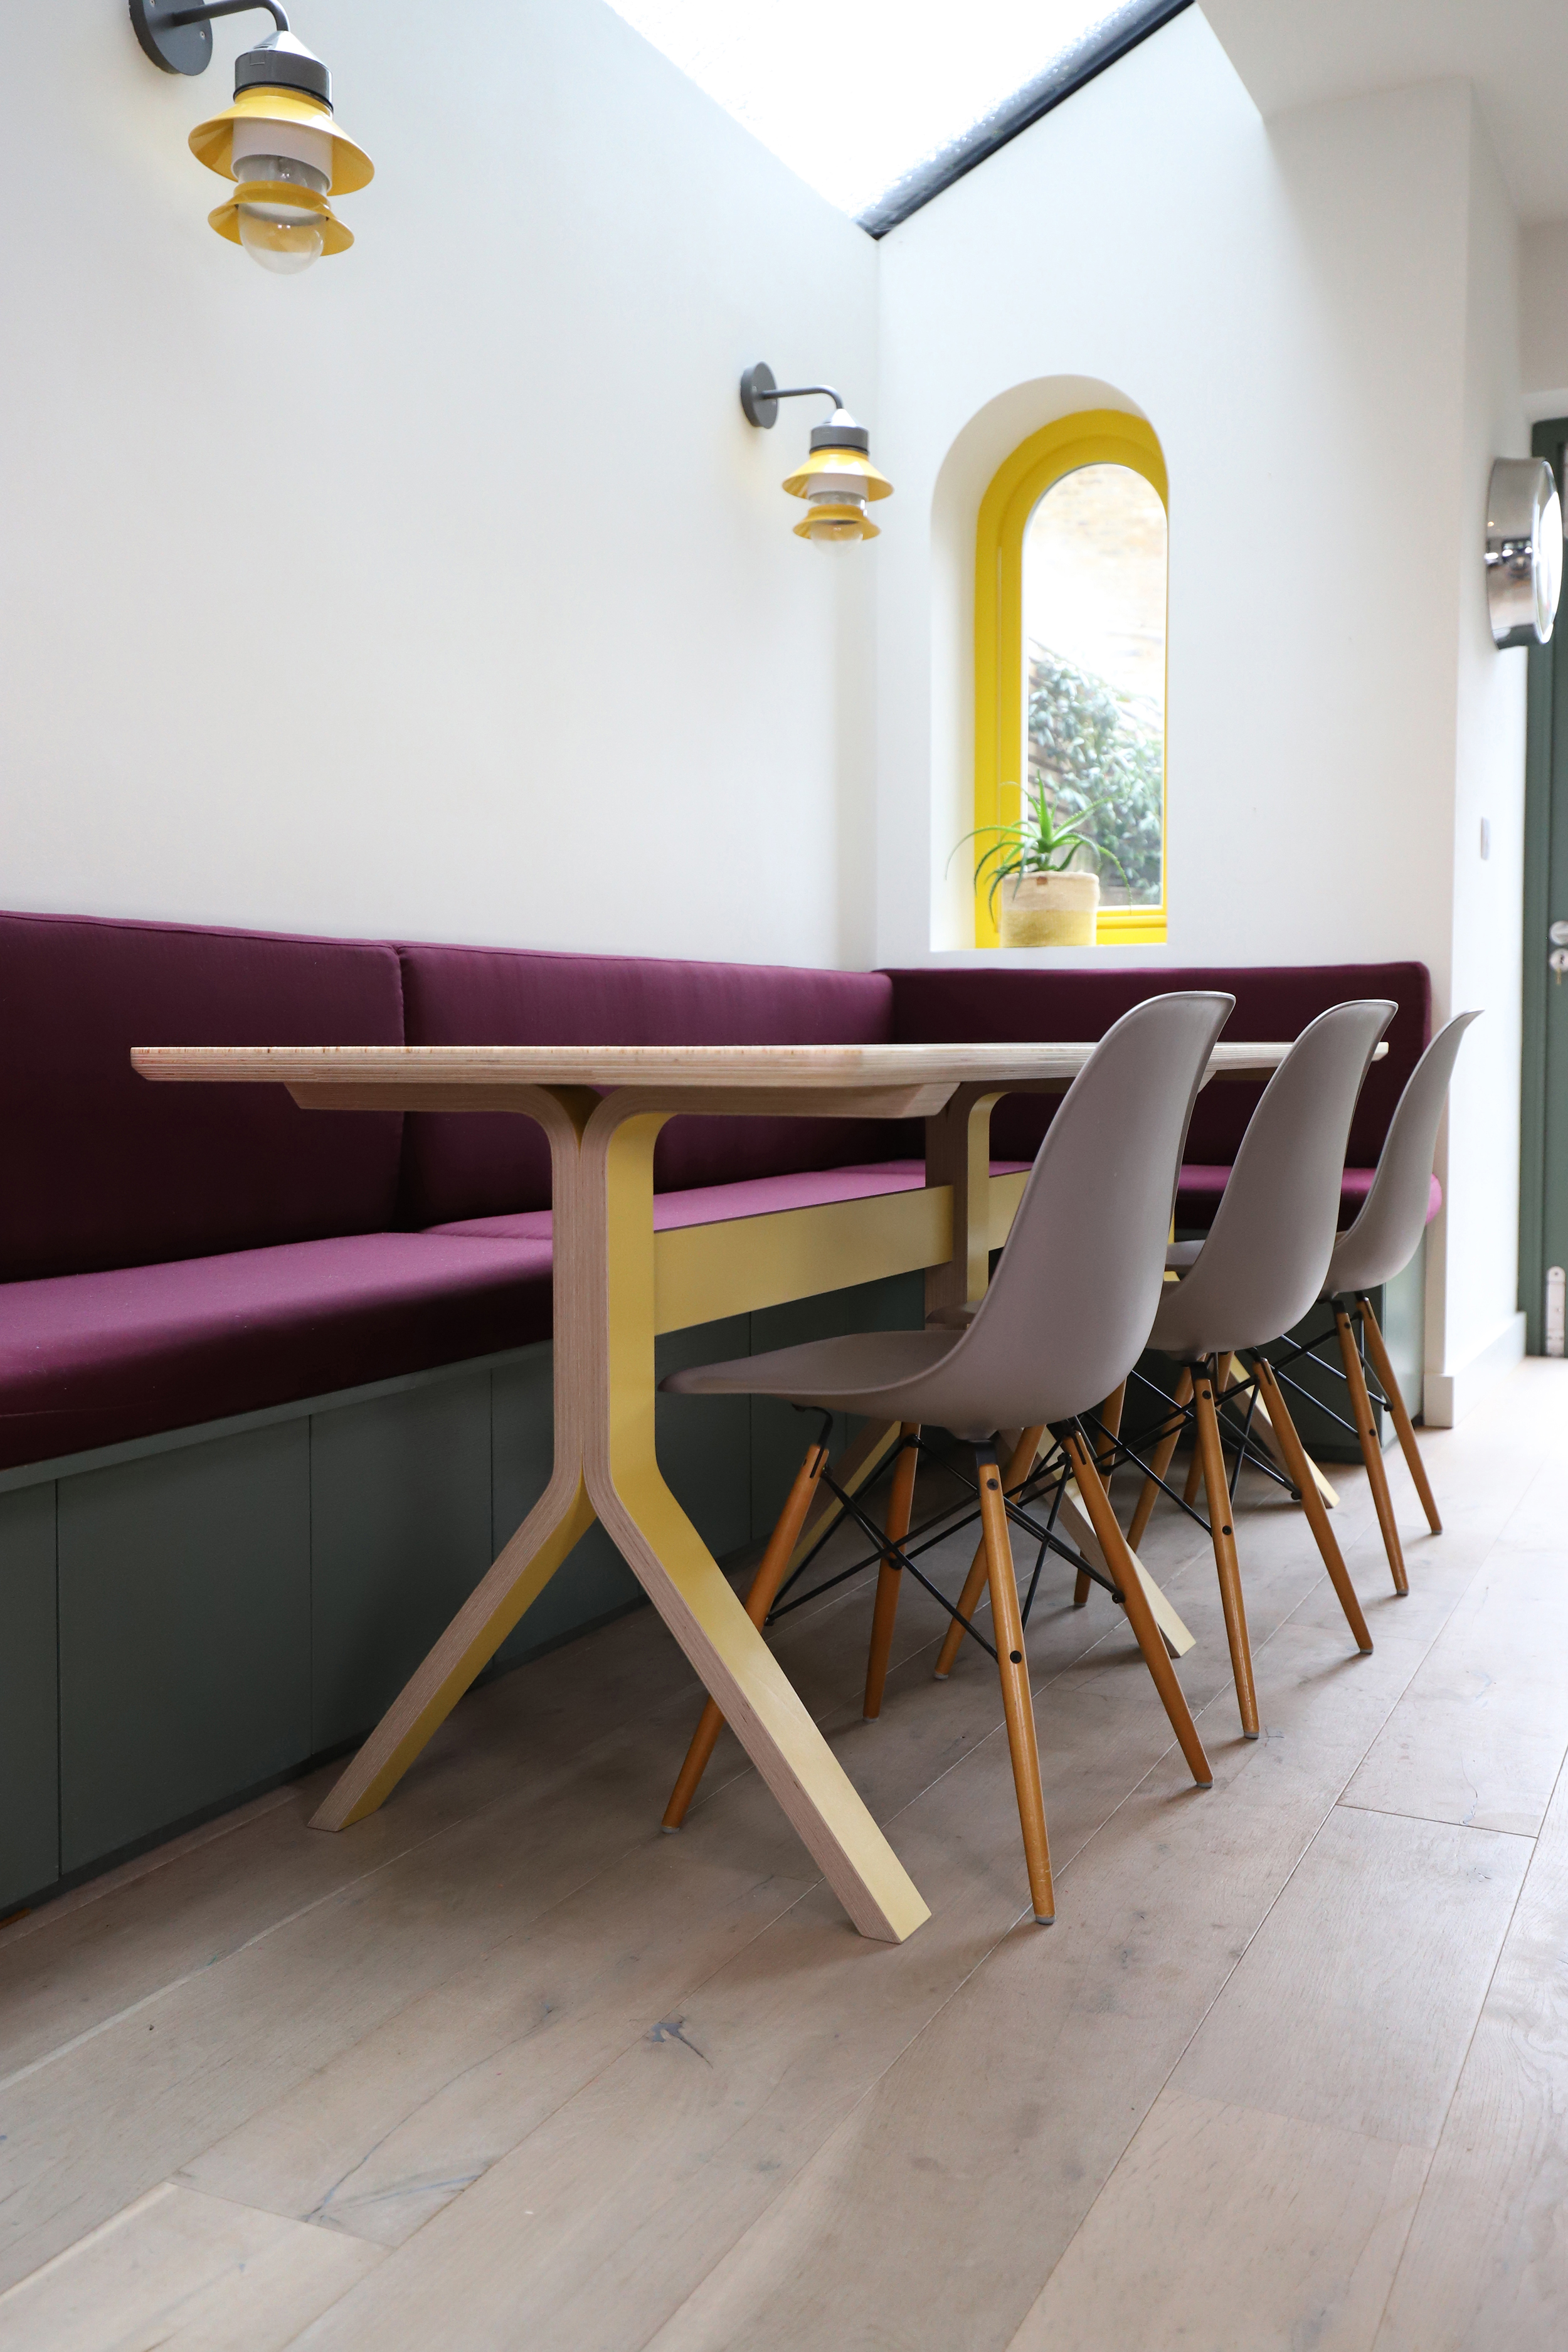 The extra long Sea Table made to match the kitchen at Valetta Road.